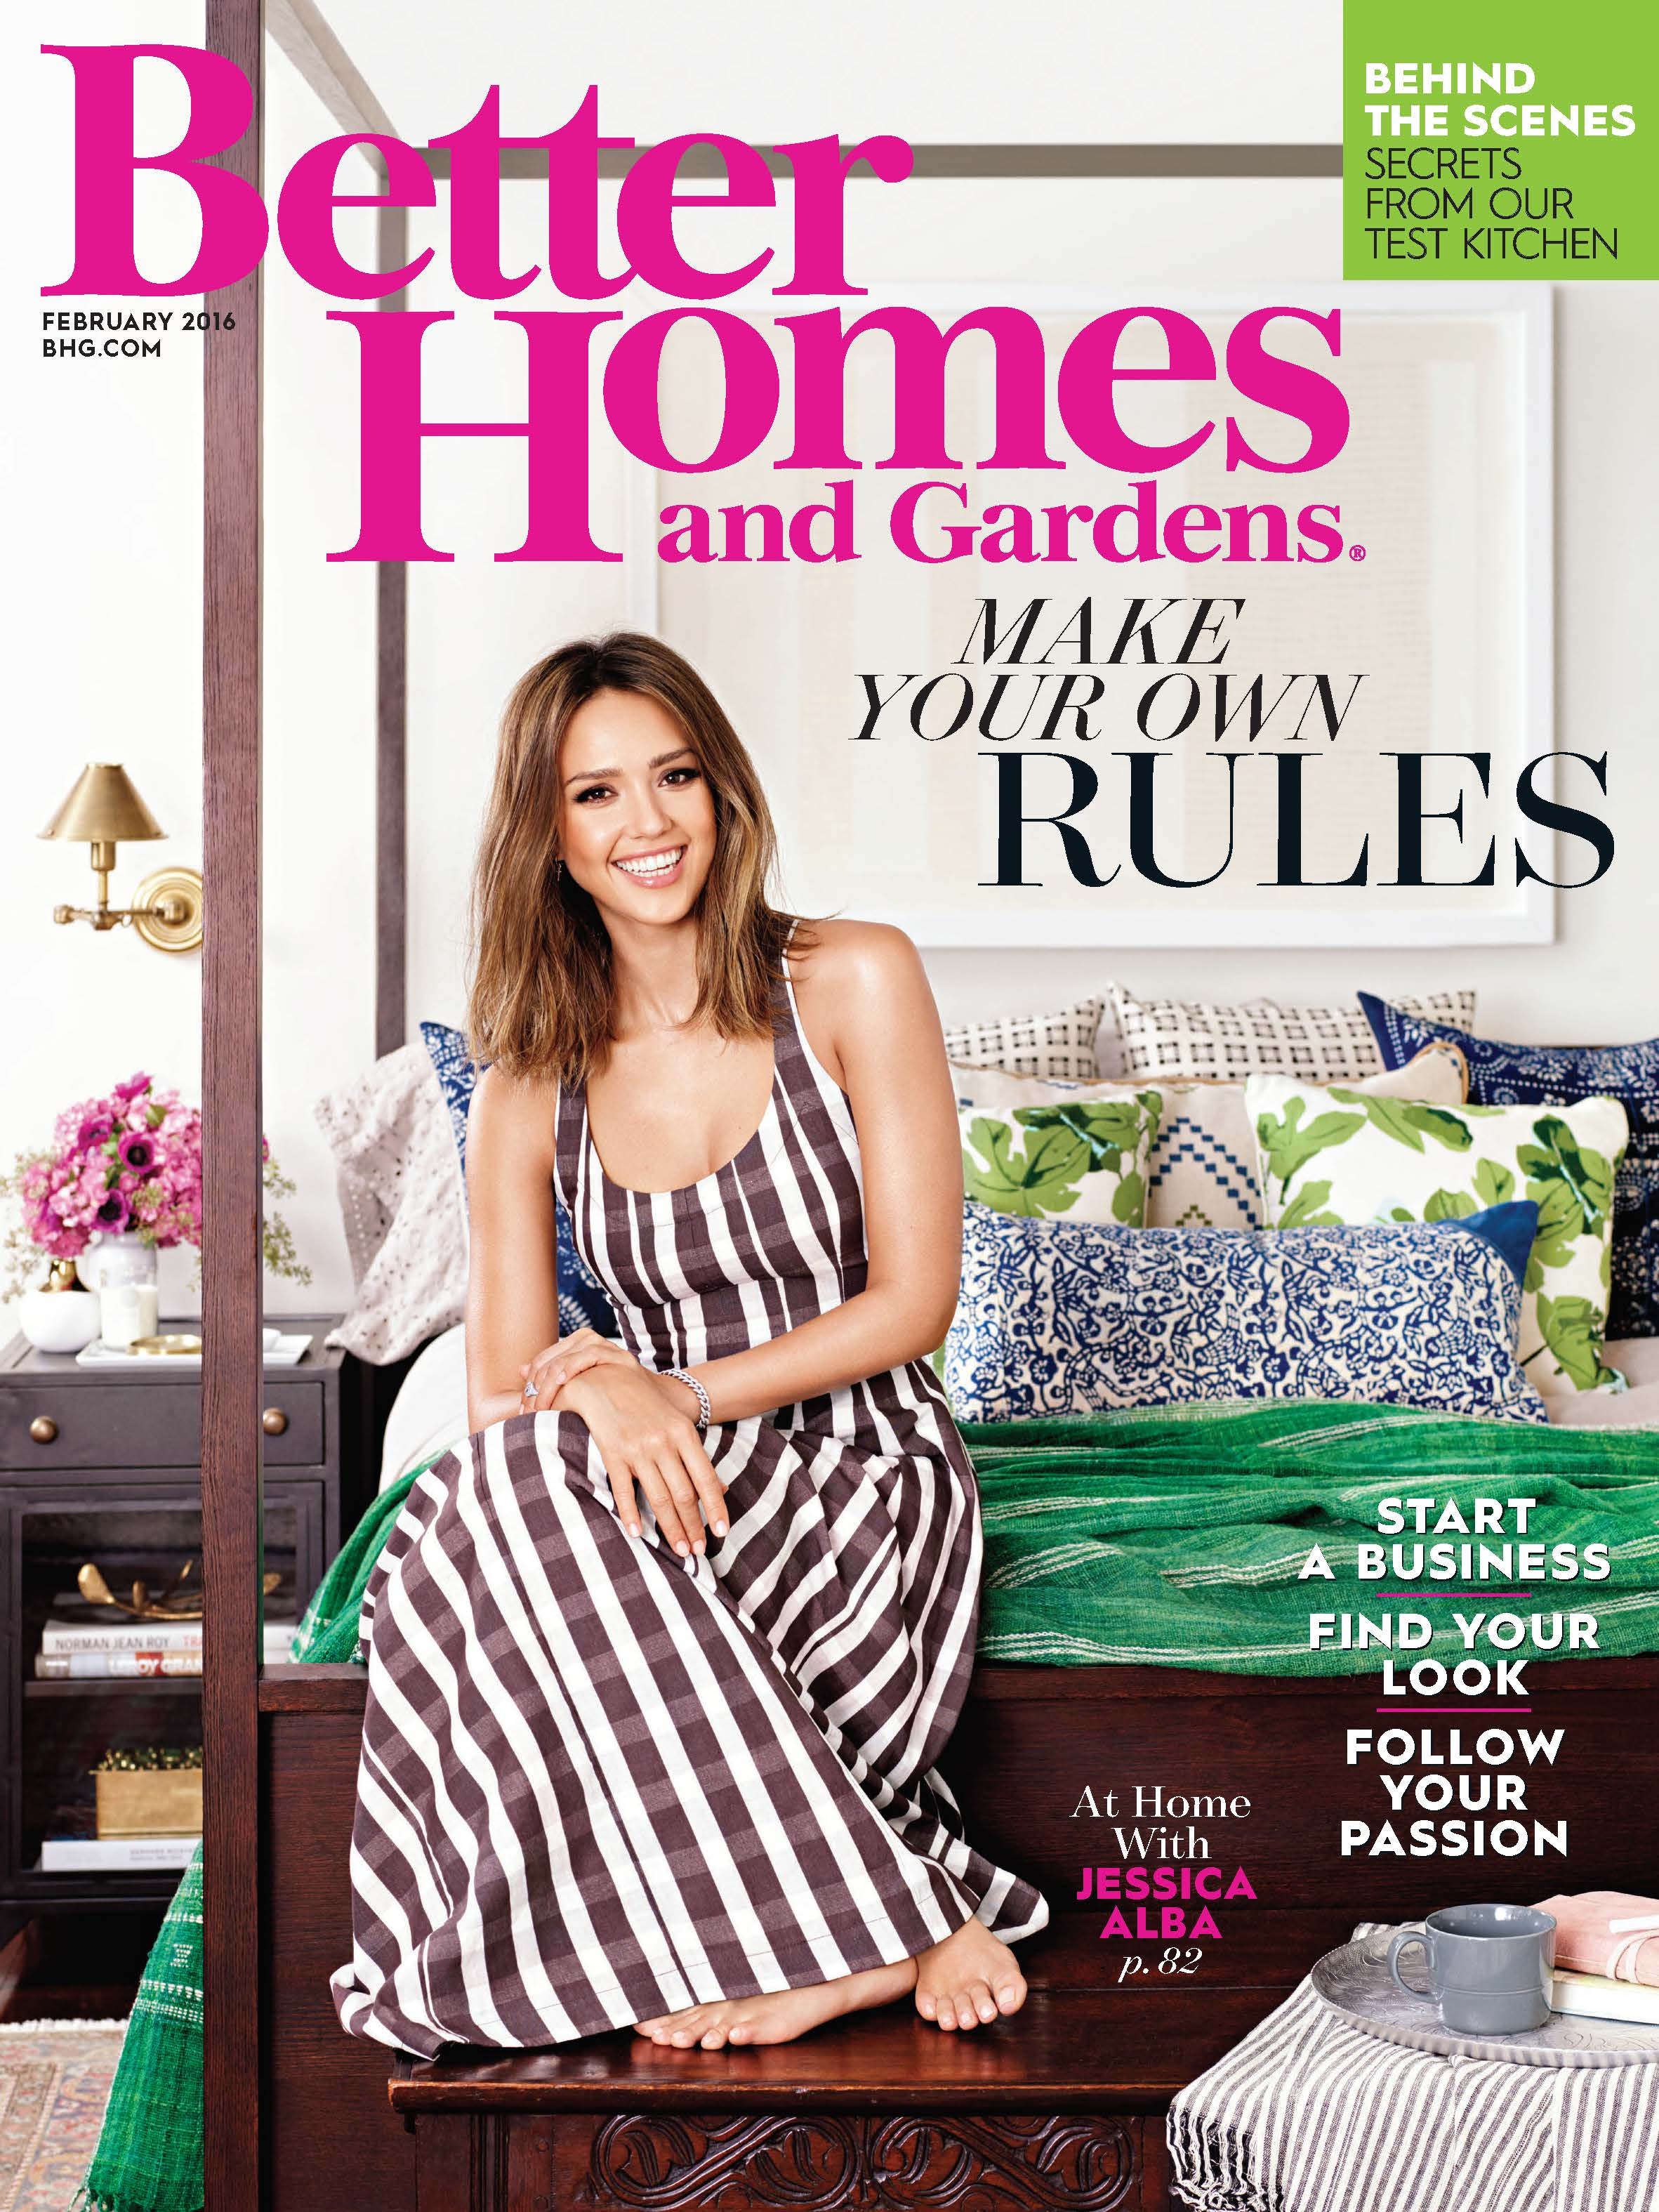 000 BetterHomesAndGardens Feb2016_Page_3.jpg